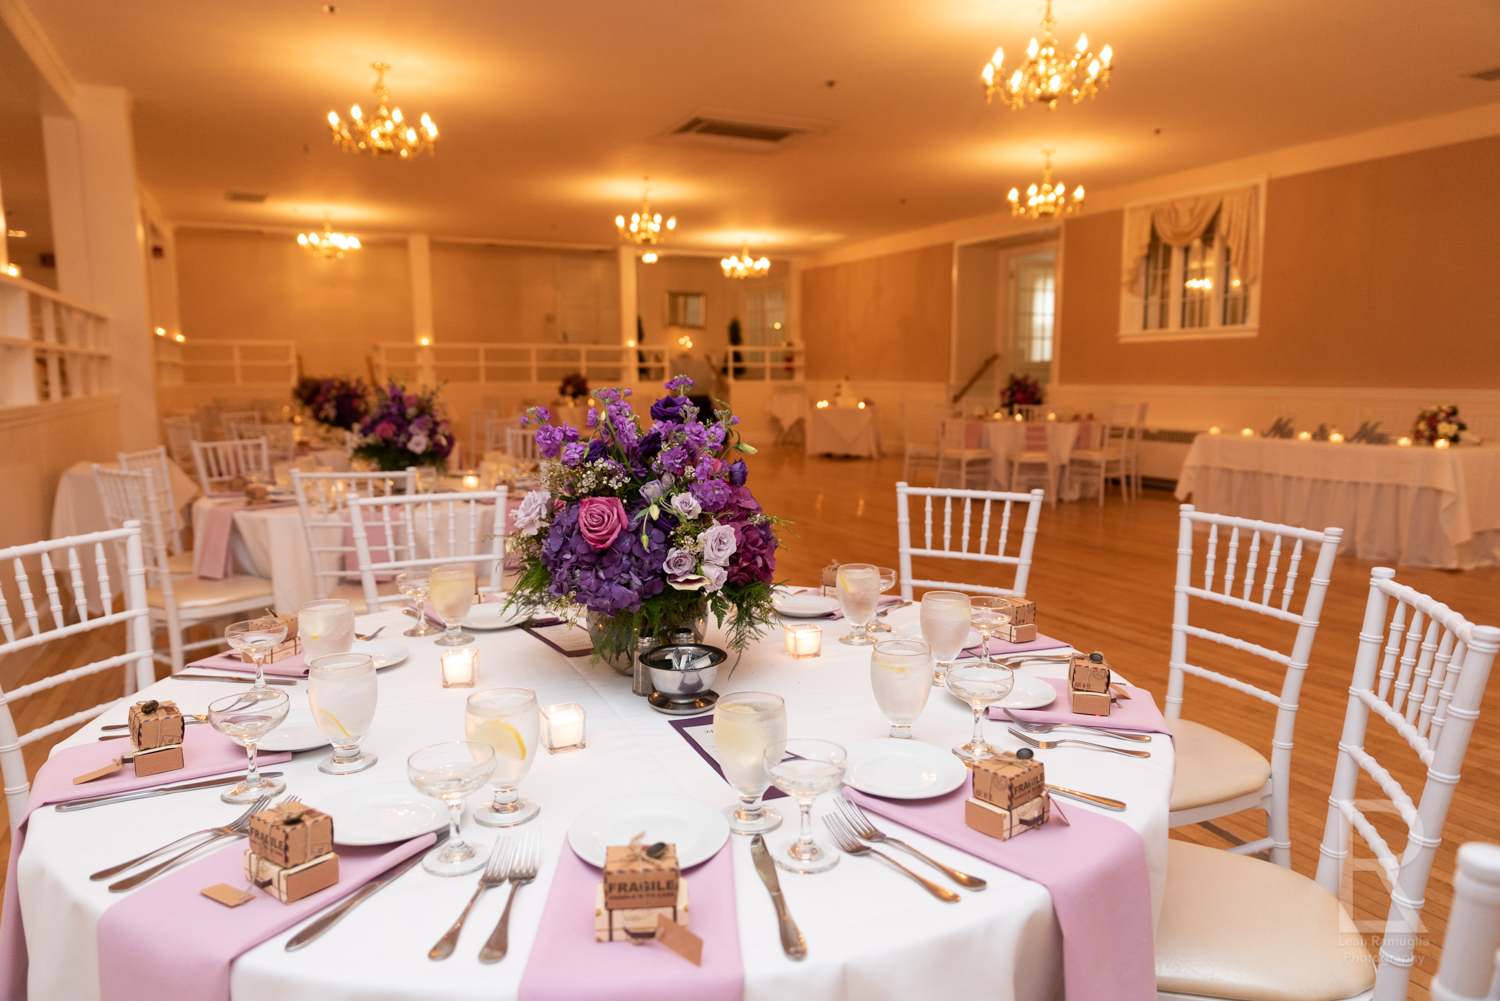 VENUE - I know that you will dedicate a lot of time to selecting a venue, and even more time deciding how to decorate it. From your color scheme to your wedding theme, I'll photograph all the hard work put into your wedding venue.